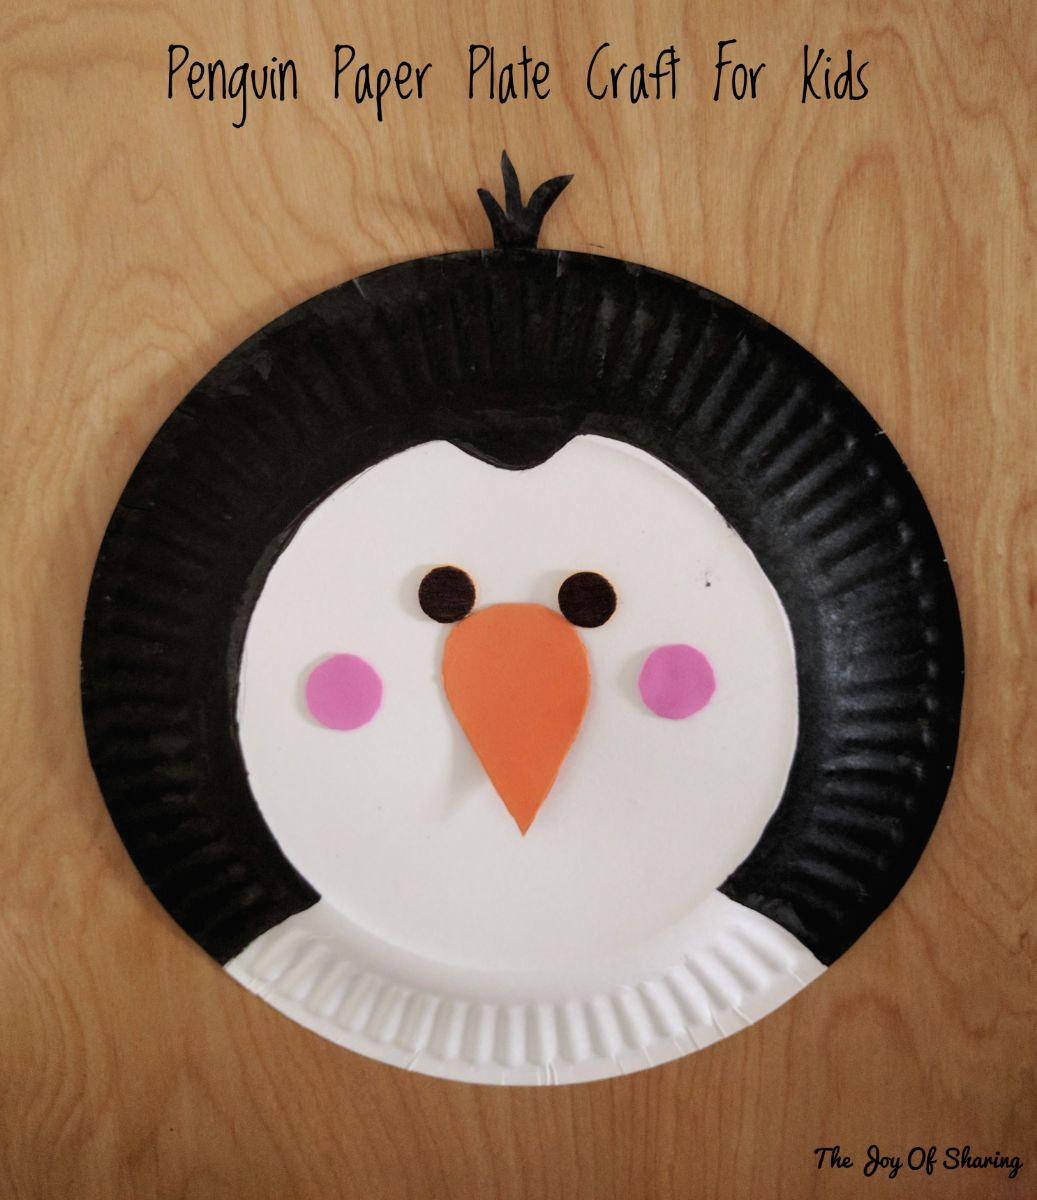 Craft for kids Paper plate craft penguin craft kids craft easy craft & The Joy of Sharing: Paper Plate Penguin Craft